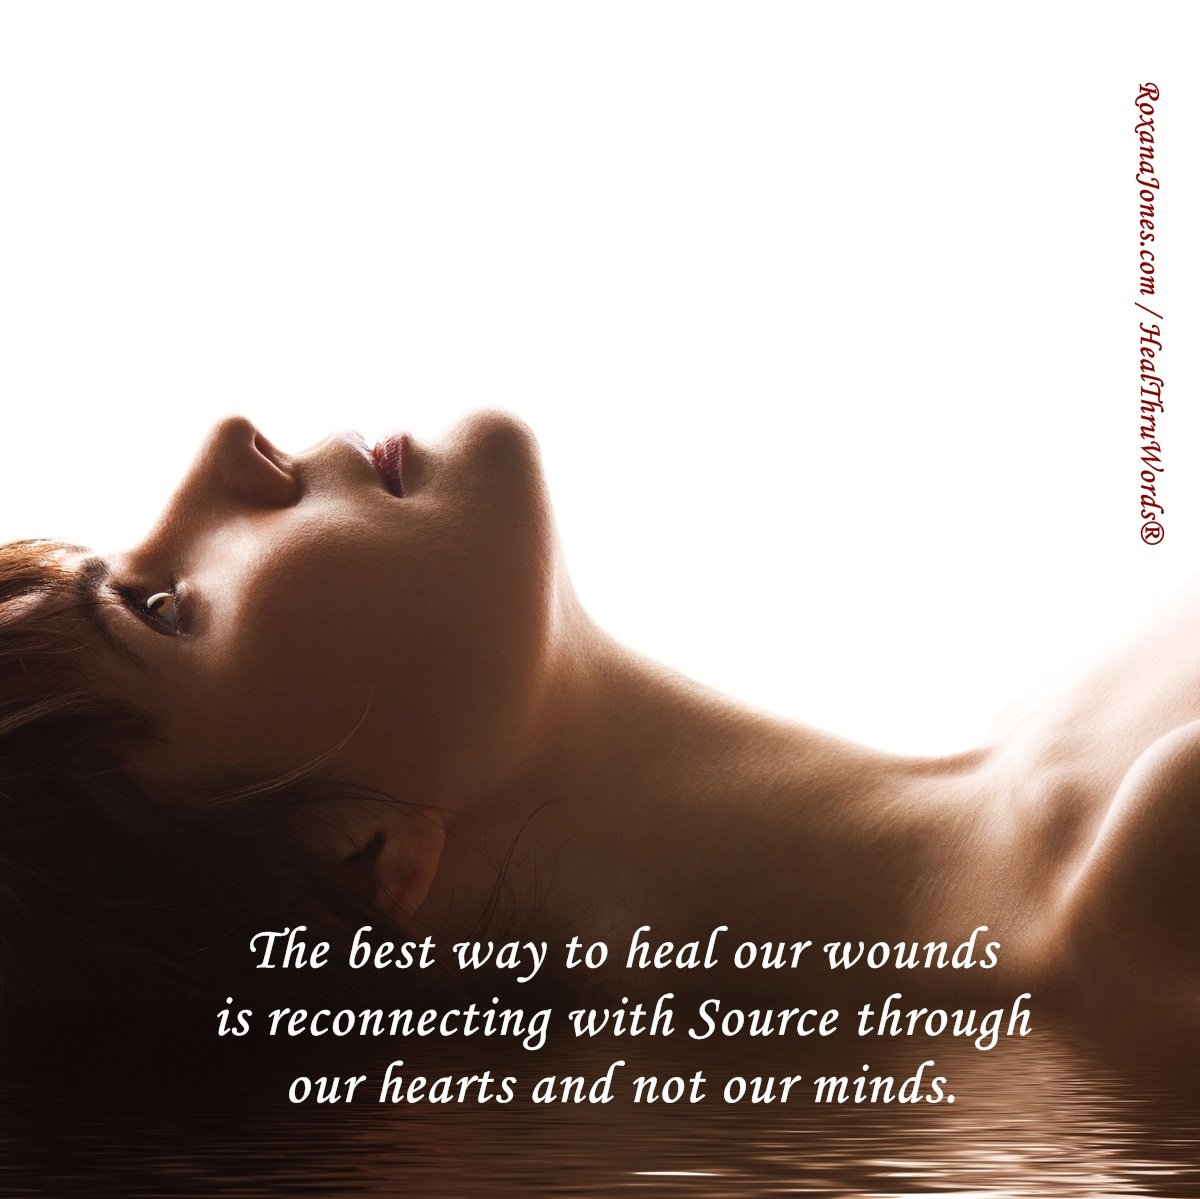 Inspirational Image: Healing our Wounds